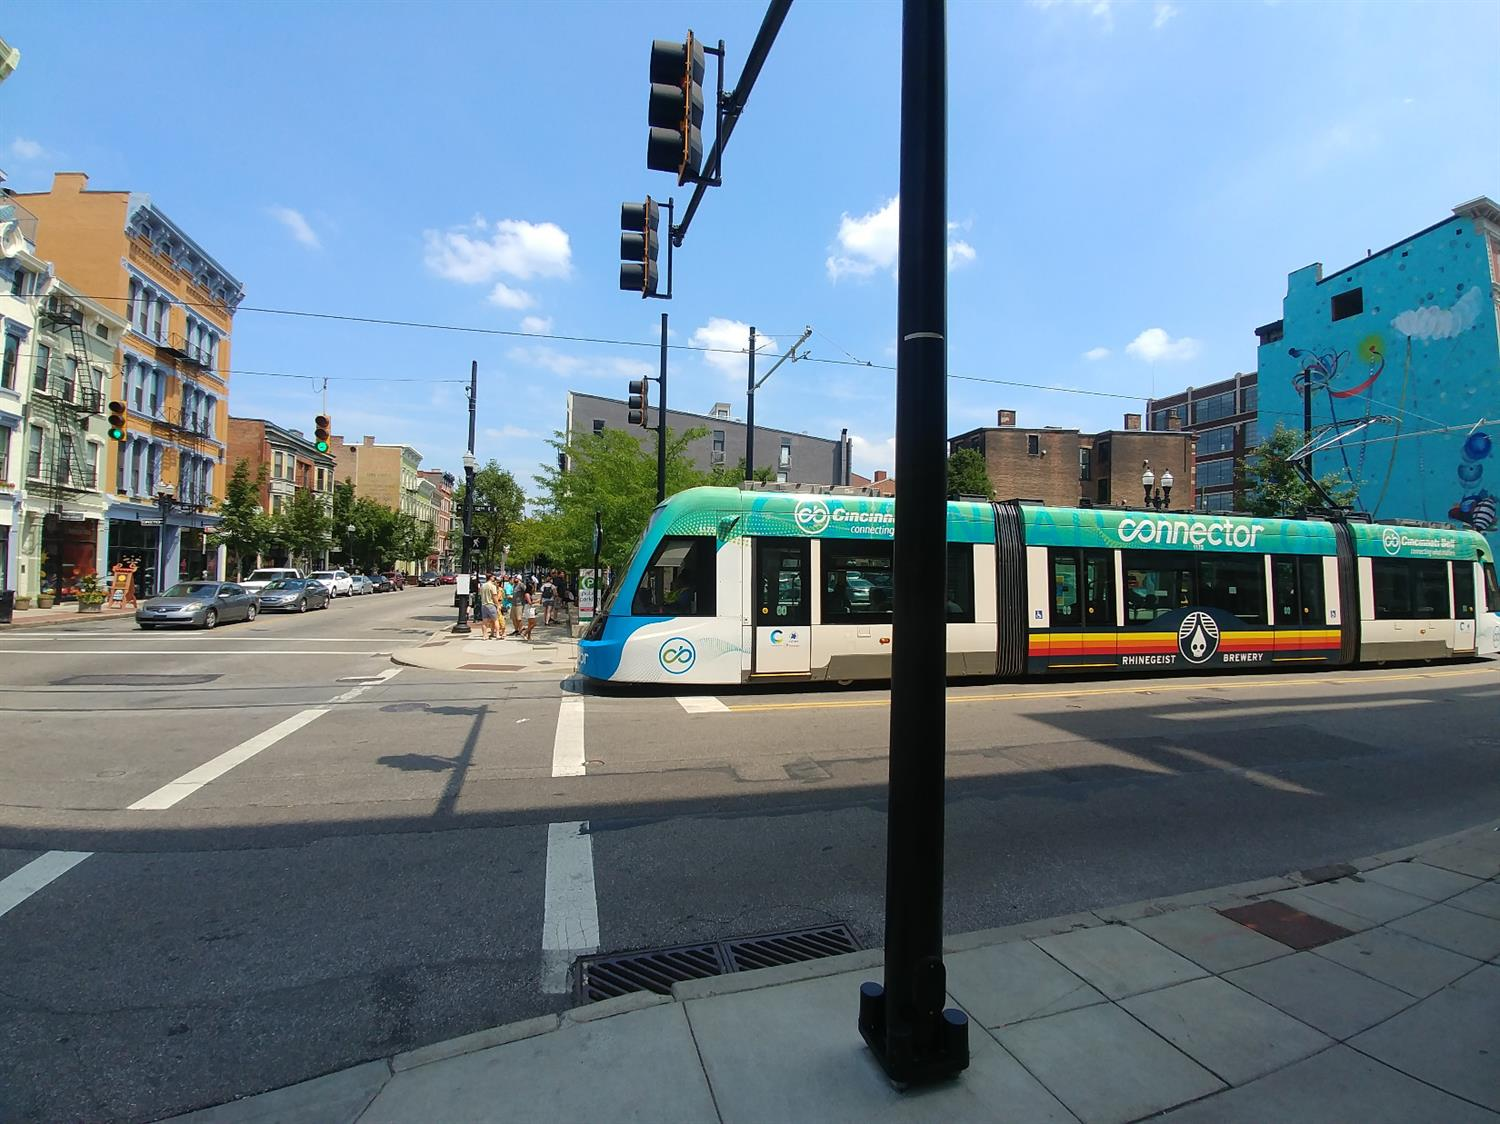 Cincinnati's street car provides quick and easy access to all that downtown has to offer... New construction homes in lower Mount Auburn within a few blocks of everything that OTR has to offer! You can't beat this location!